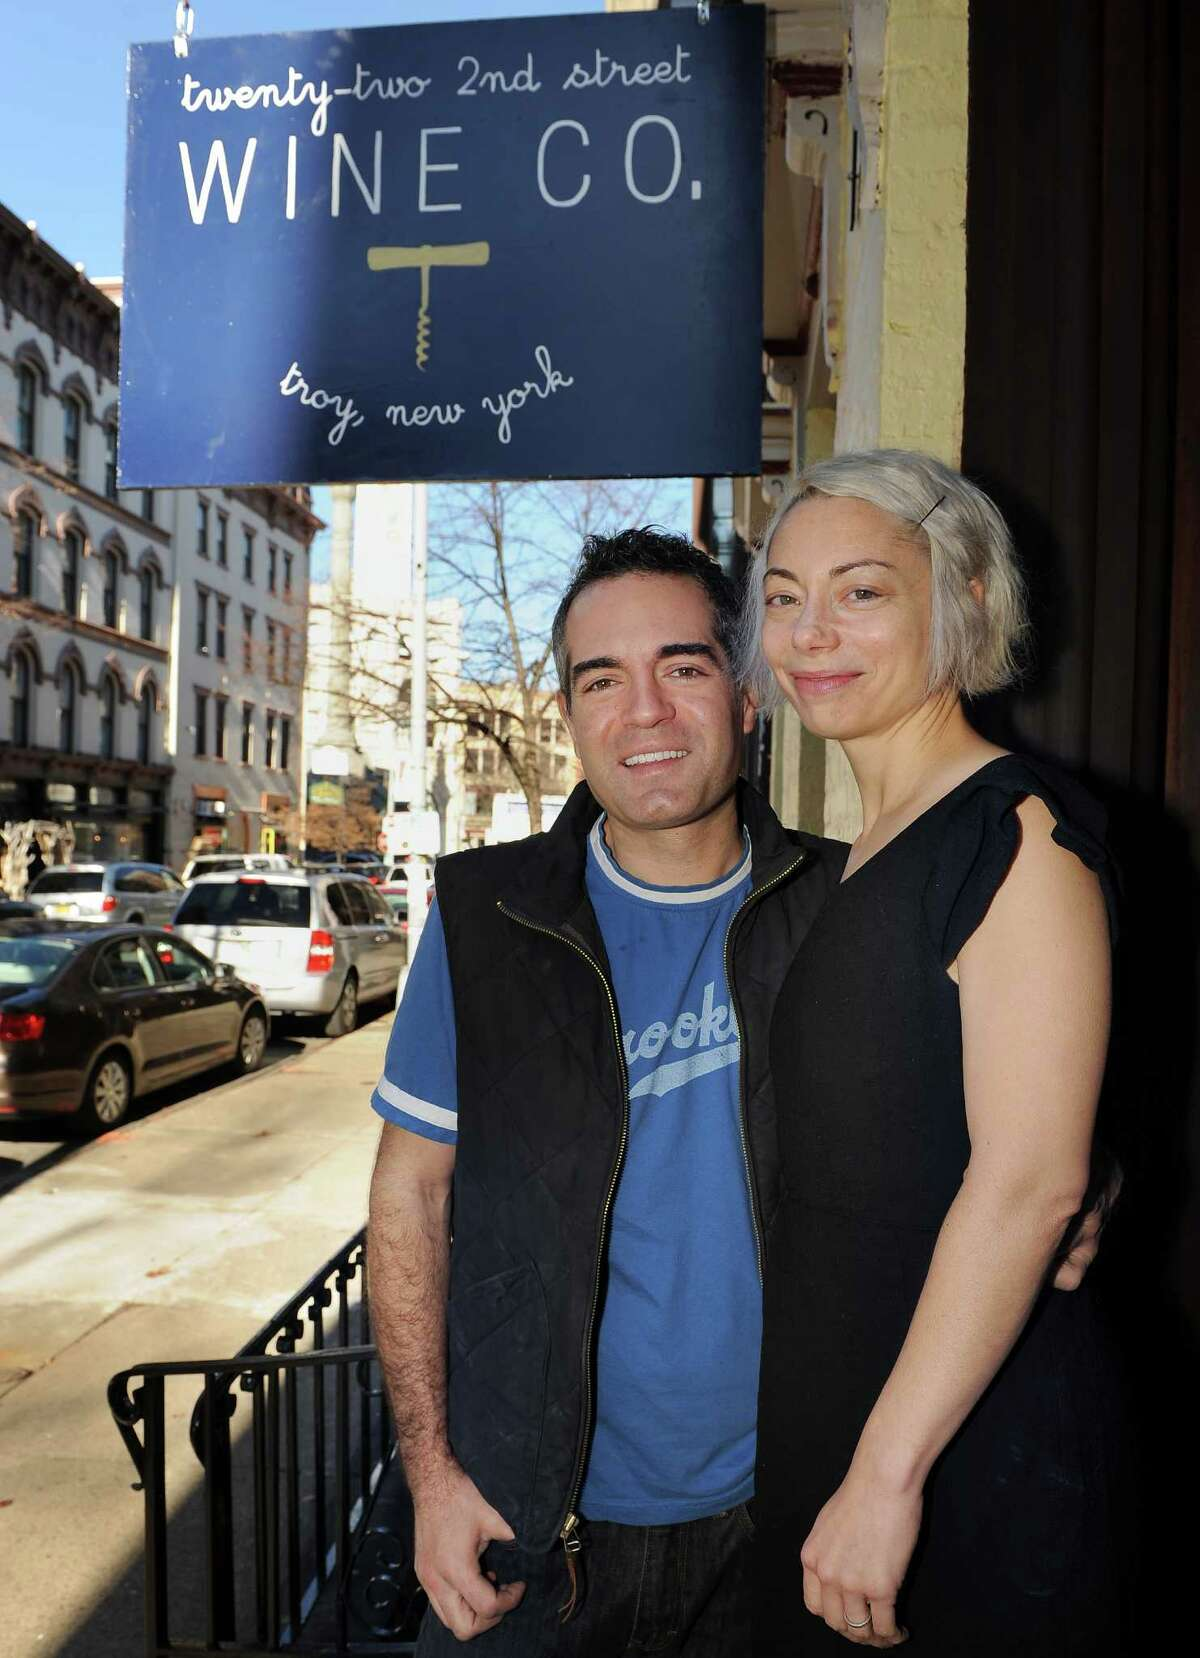 Vic Christopher and his wife Heather LaVine at their new wine shop, 22 Second St Wine Co., Friday Nov. 20, 2015 in Troy, NY.(John Carl D'Annibale / Times Union)